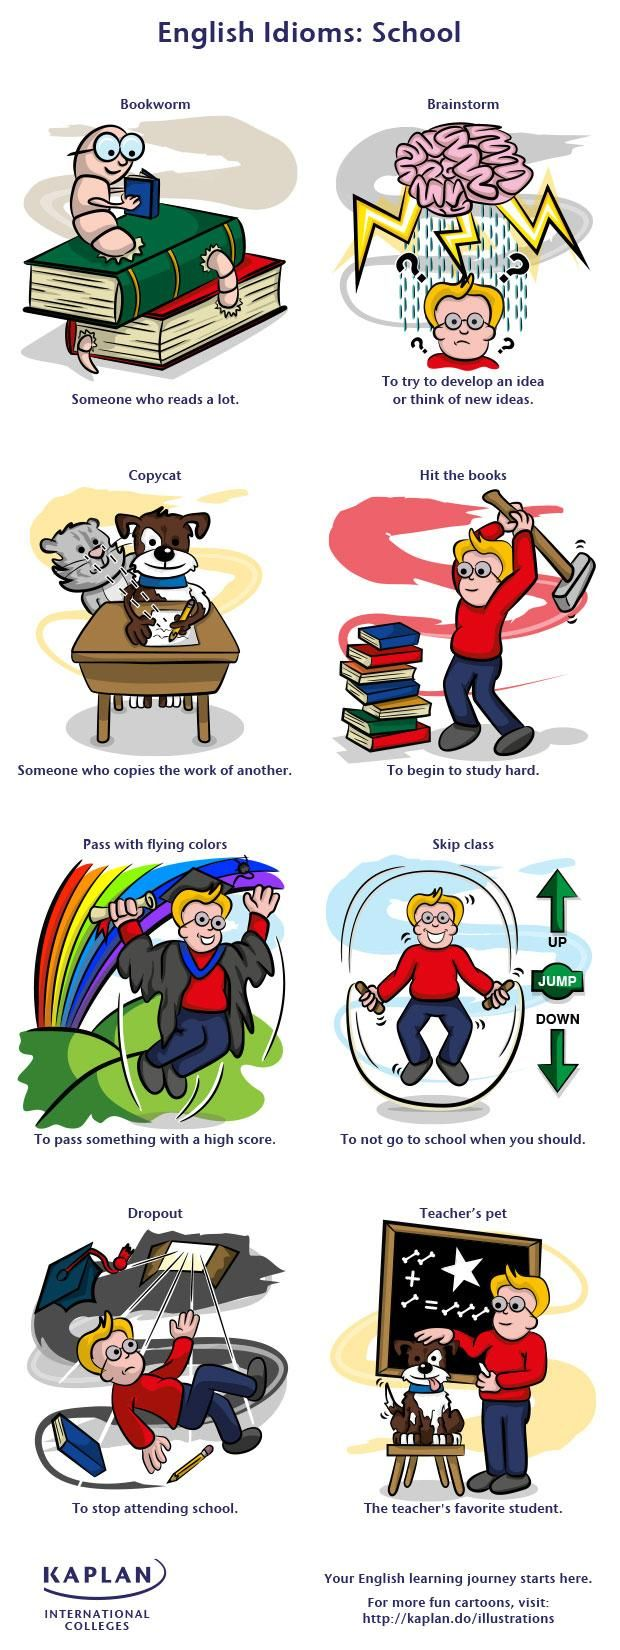 Here are eight #idioms that deal with school.  http://is.gd/yQaqNl  pic.twitter.com/pxL3jYjI4l